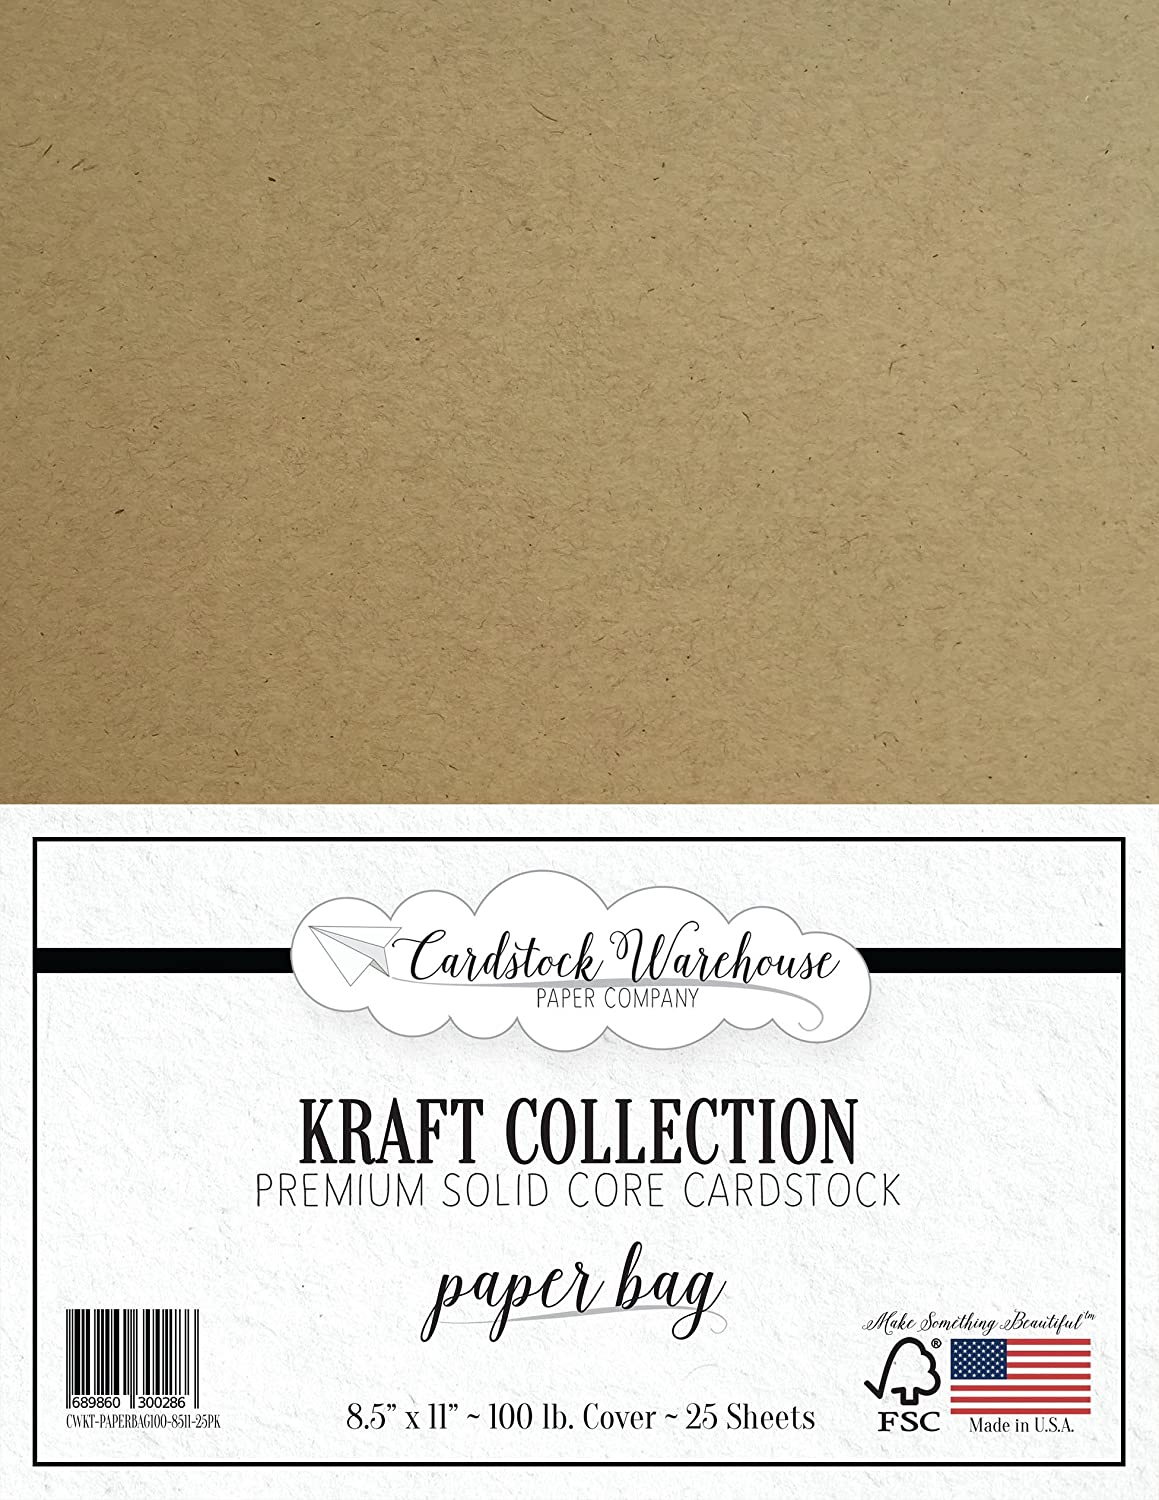 PAPER BAG KRAFT Recycled Cardstock from Cardstock Warehouse - 8.5